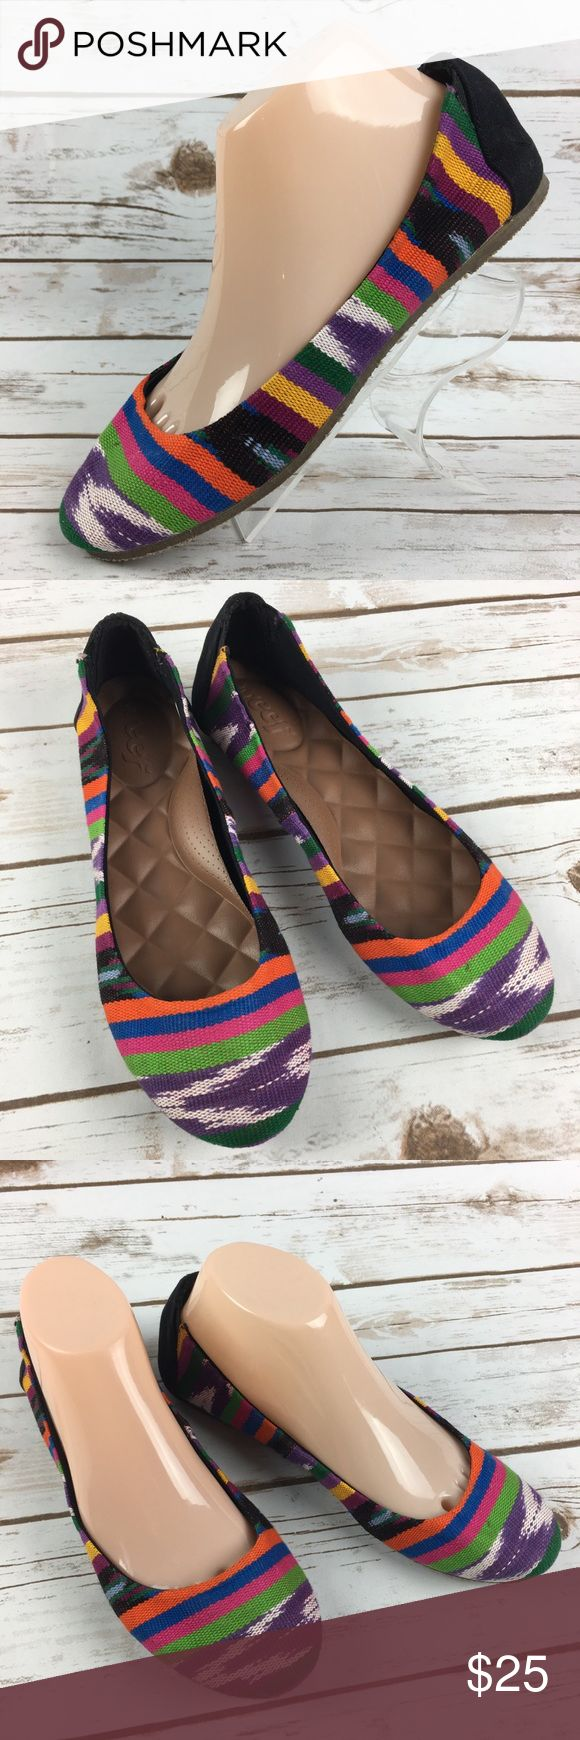 Reef Rainbow Striped Ballet Flats Shoes Size 8 EUC These shoes are in very good, lightly worn condition. Minor scuffs, scratches and marks from wear. Please see pics for more details (: Reef Shoes Flats & Loafers